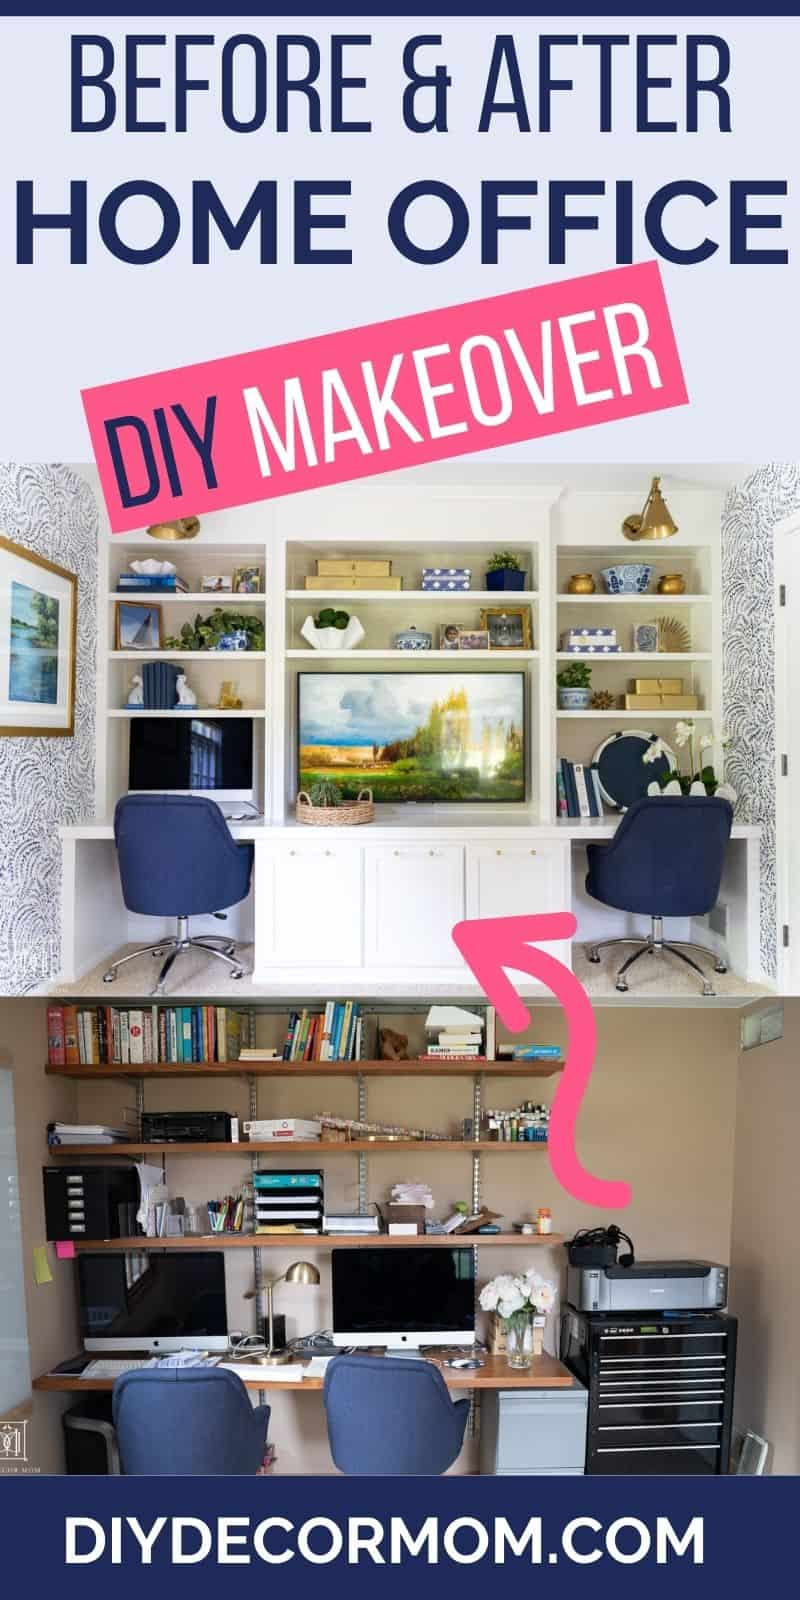 DIY home office makeover before and after